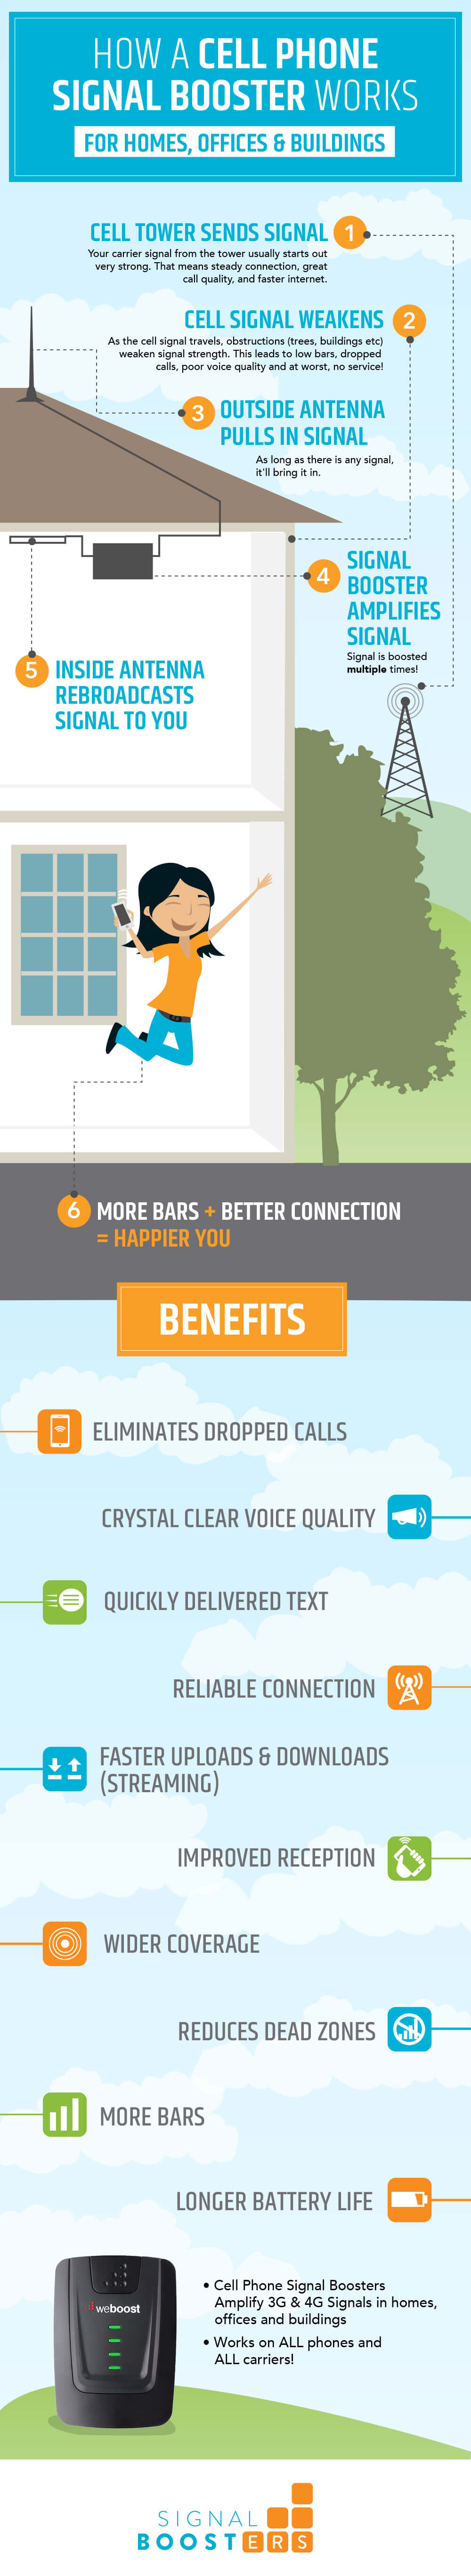 How A Cell Phone Signal Booster Works For Homes